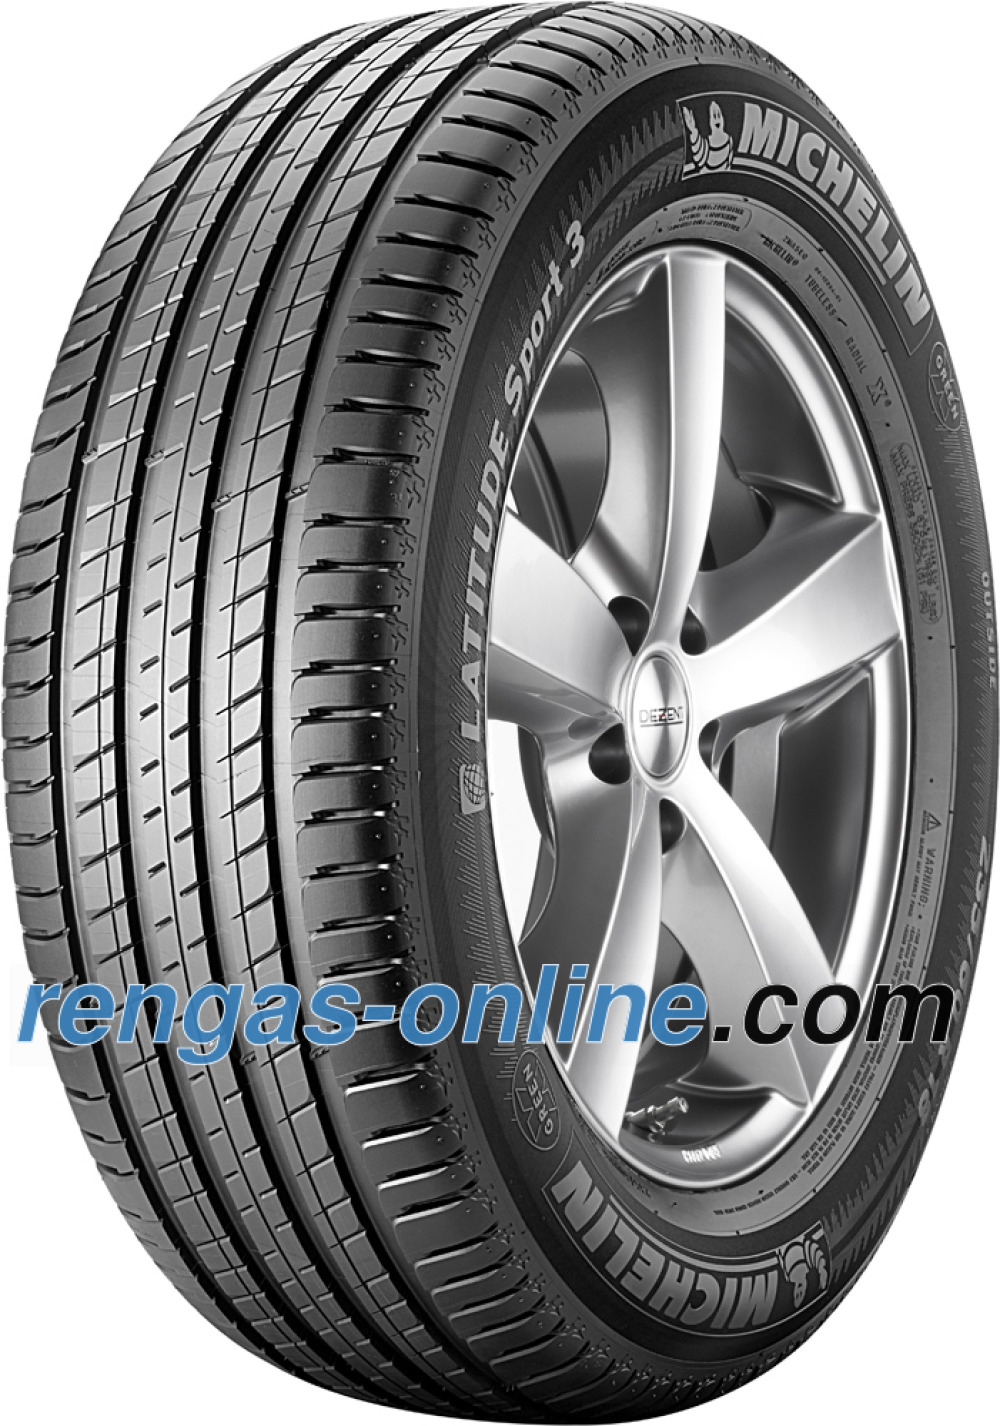 michelin-latitude-sport-3-25545-r20-105y-xl-t0-acoustic